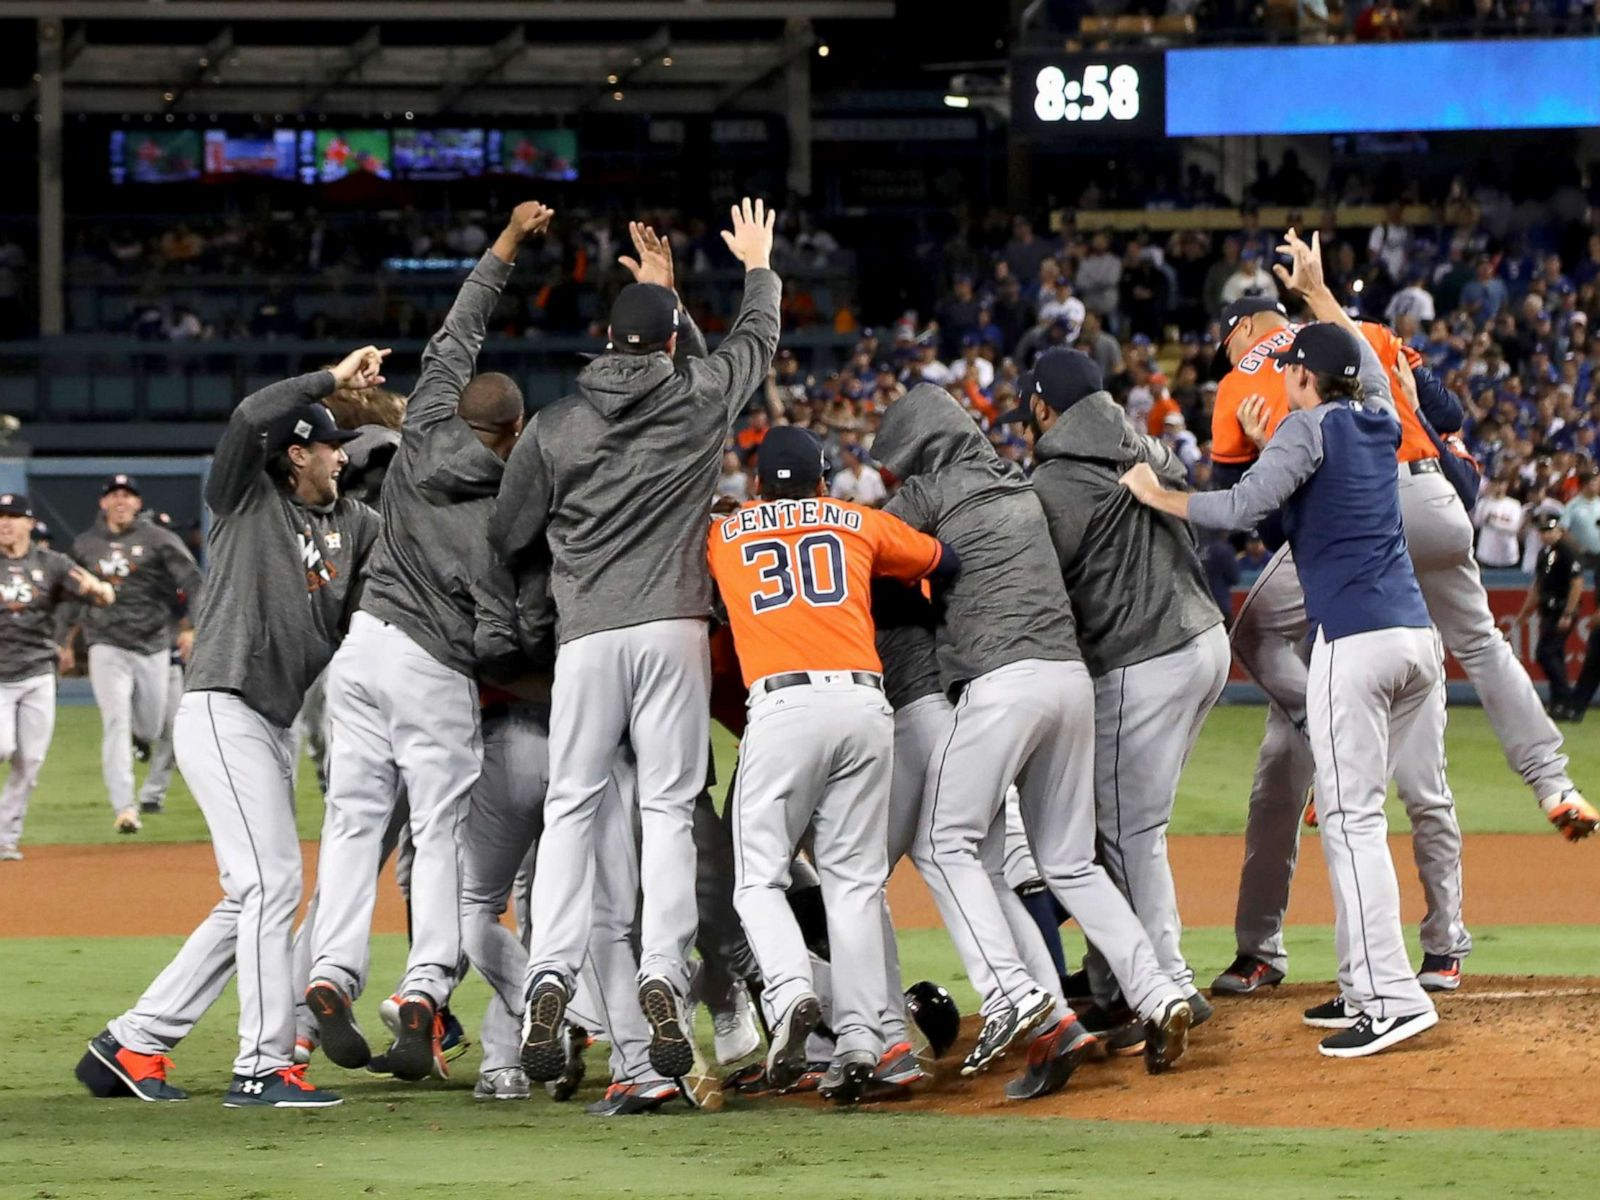 Astros Team >> Mlb Suspends Houston Astros Gm Manager For Sign Stealing In